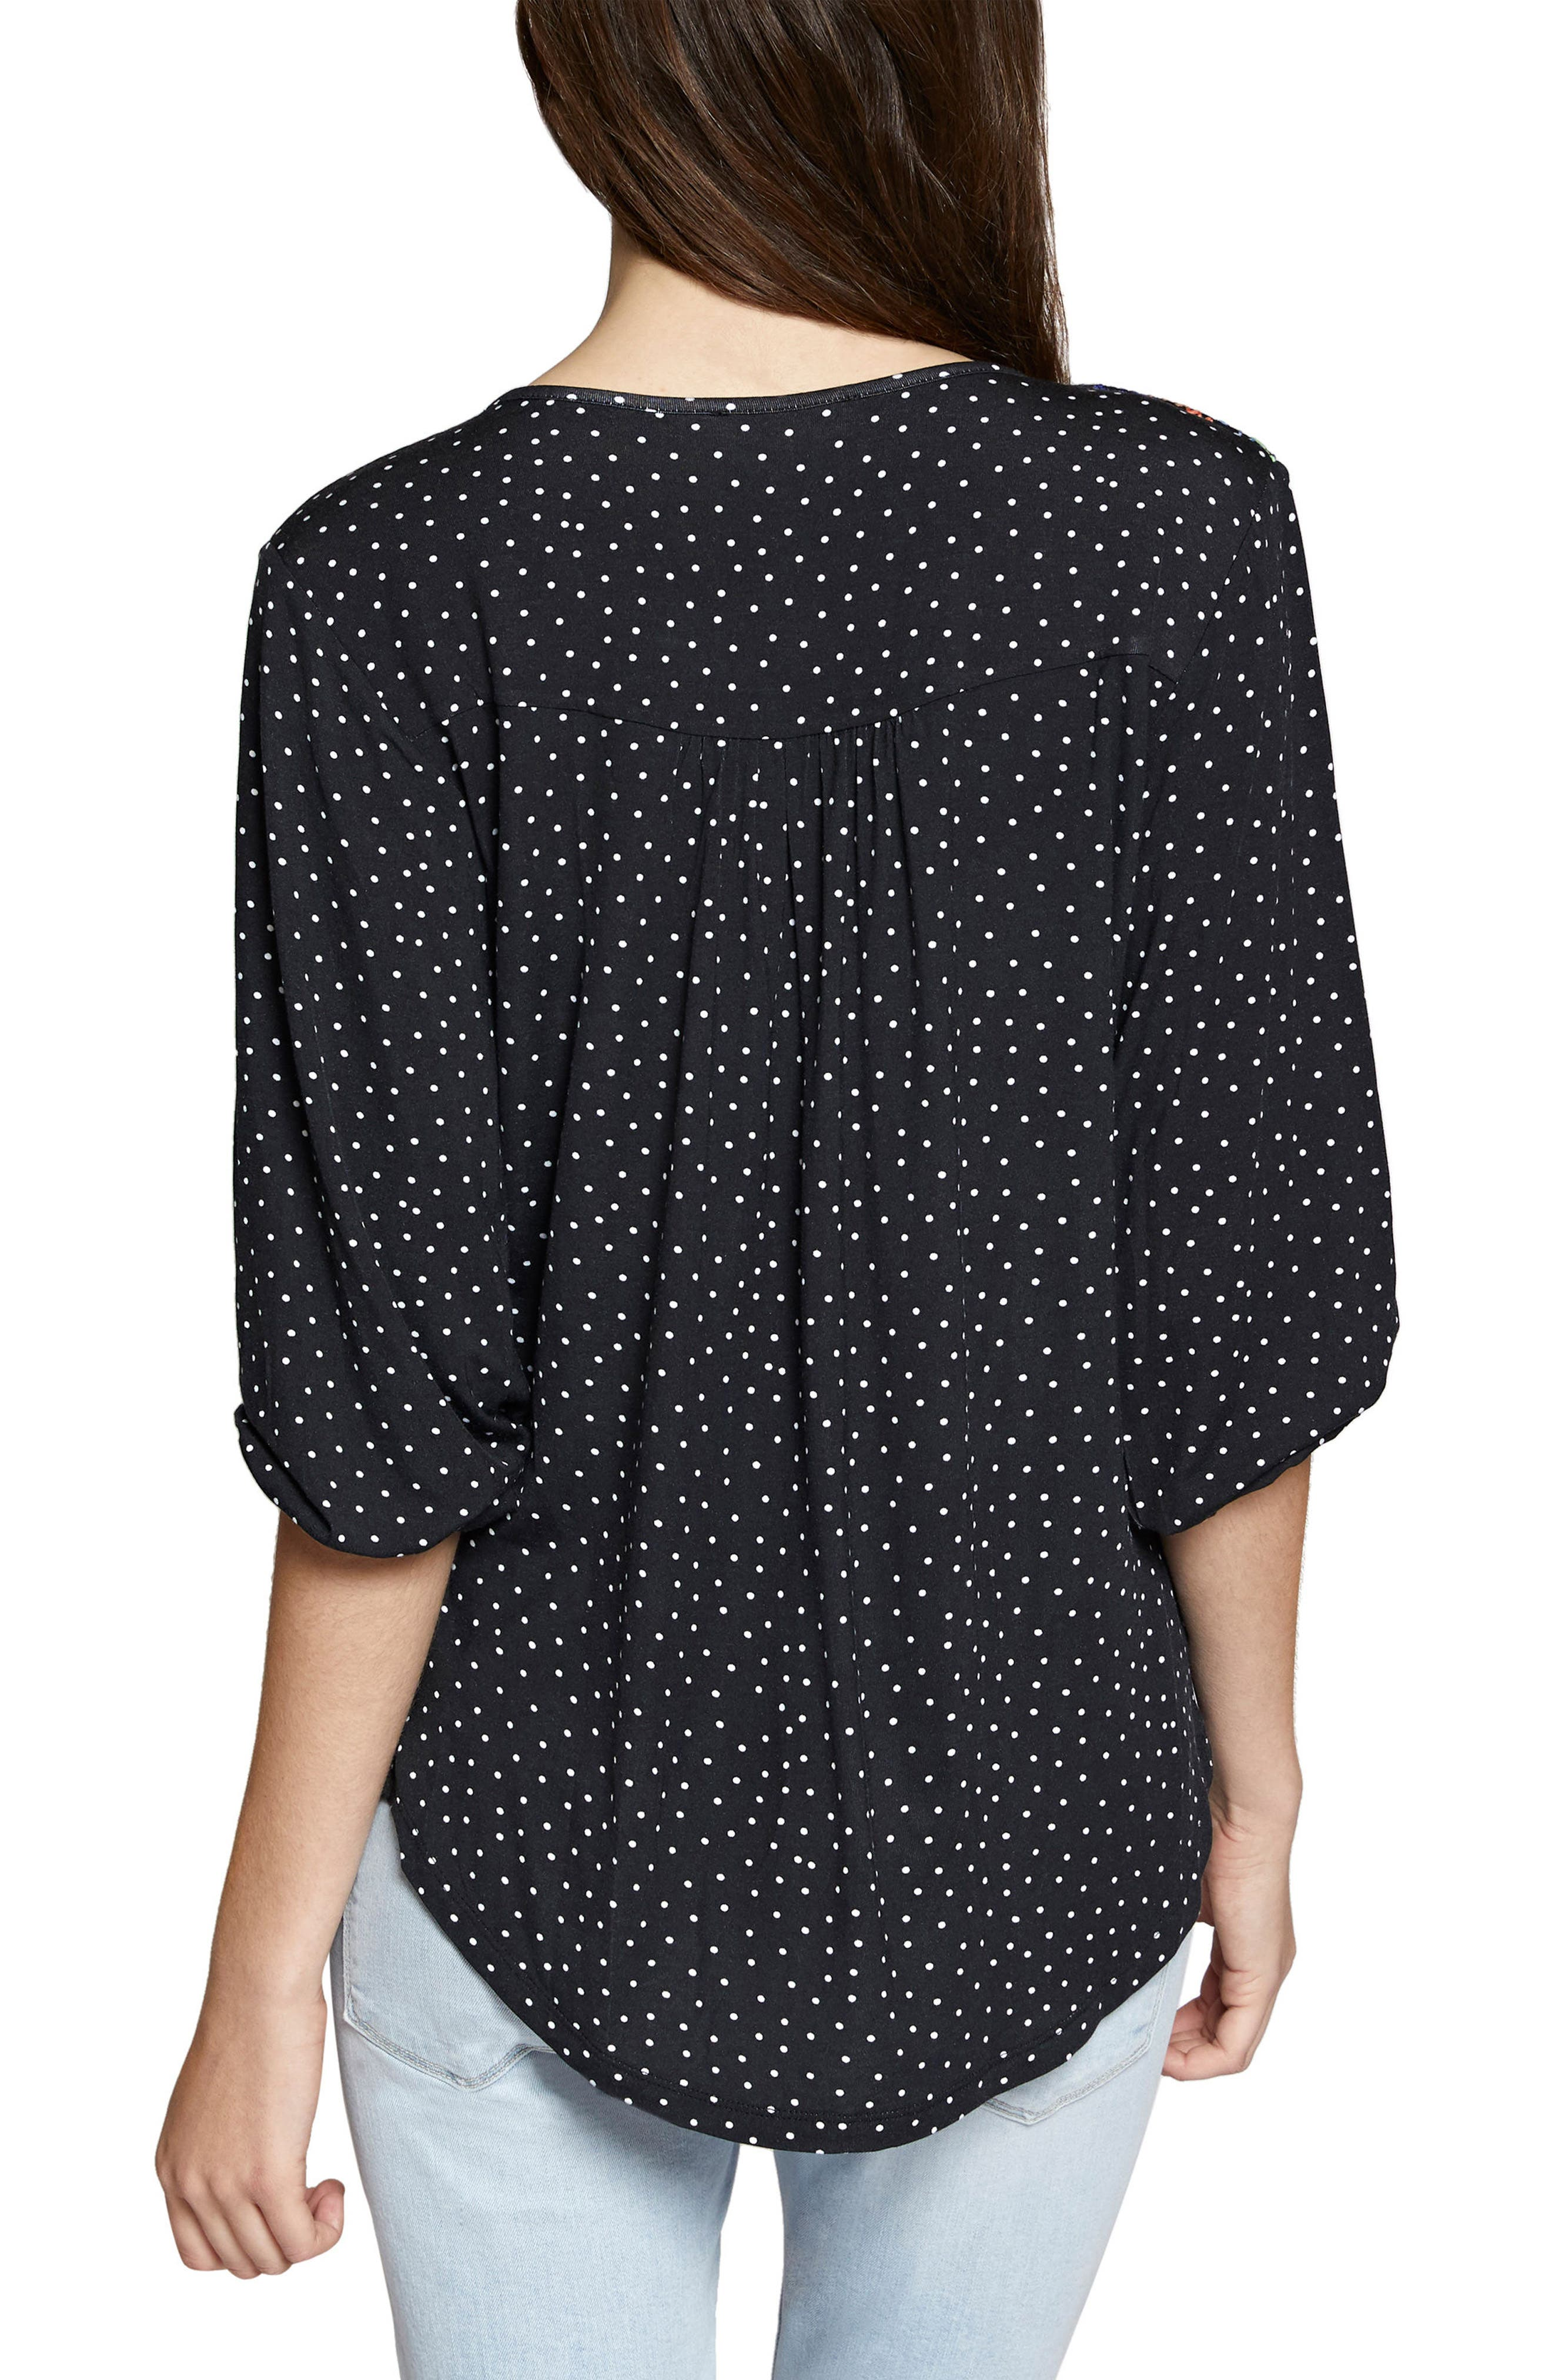 Anabelle Polka Dot Top,                             Alternate thumbnail 2, color,                             001